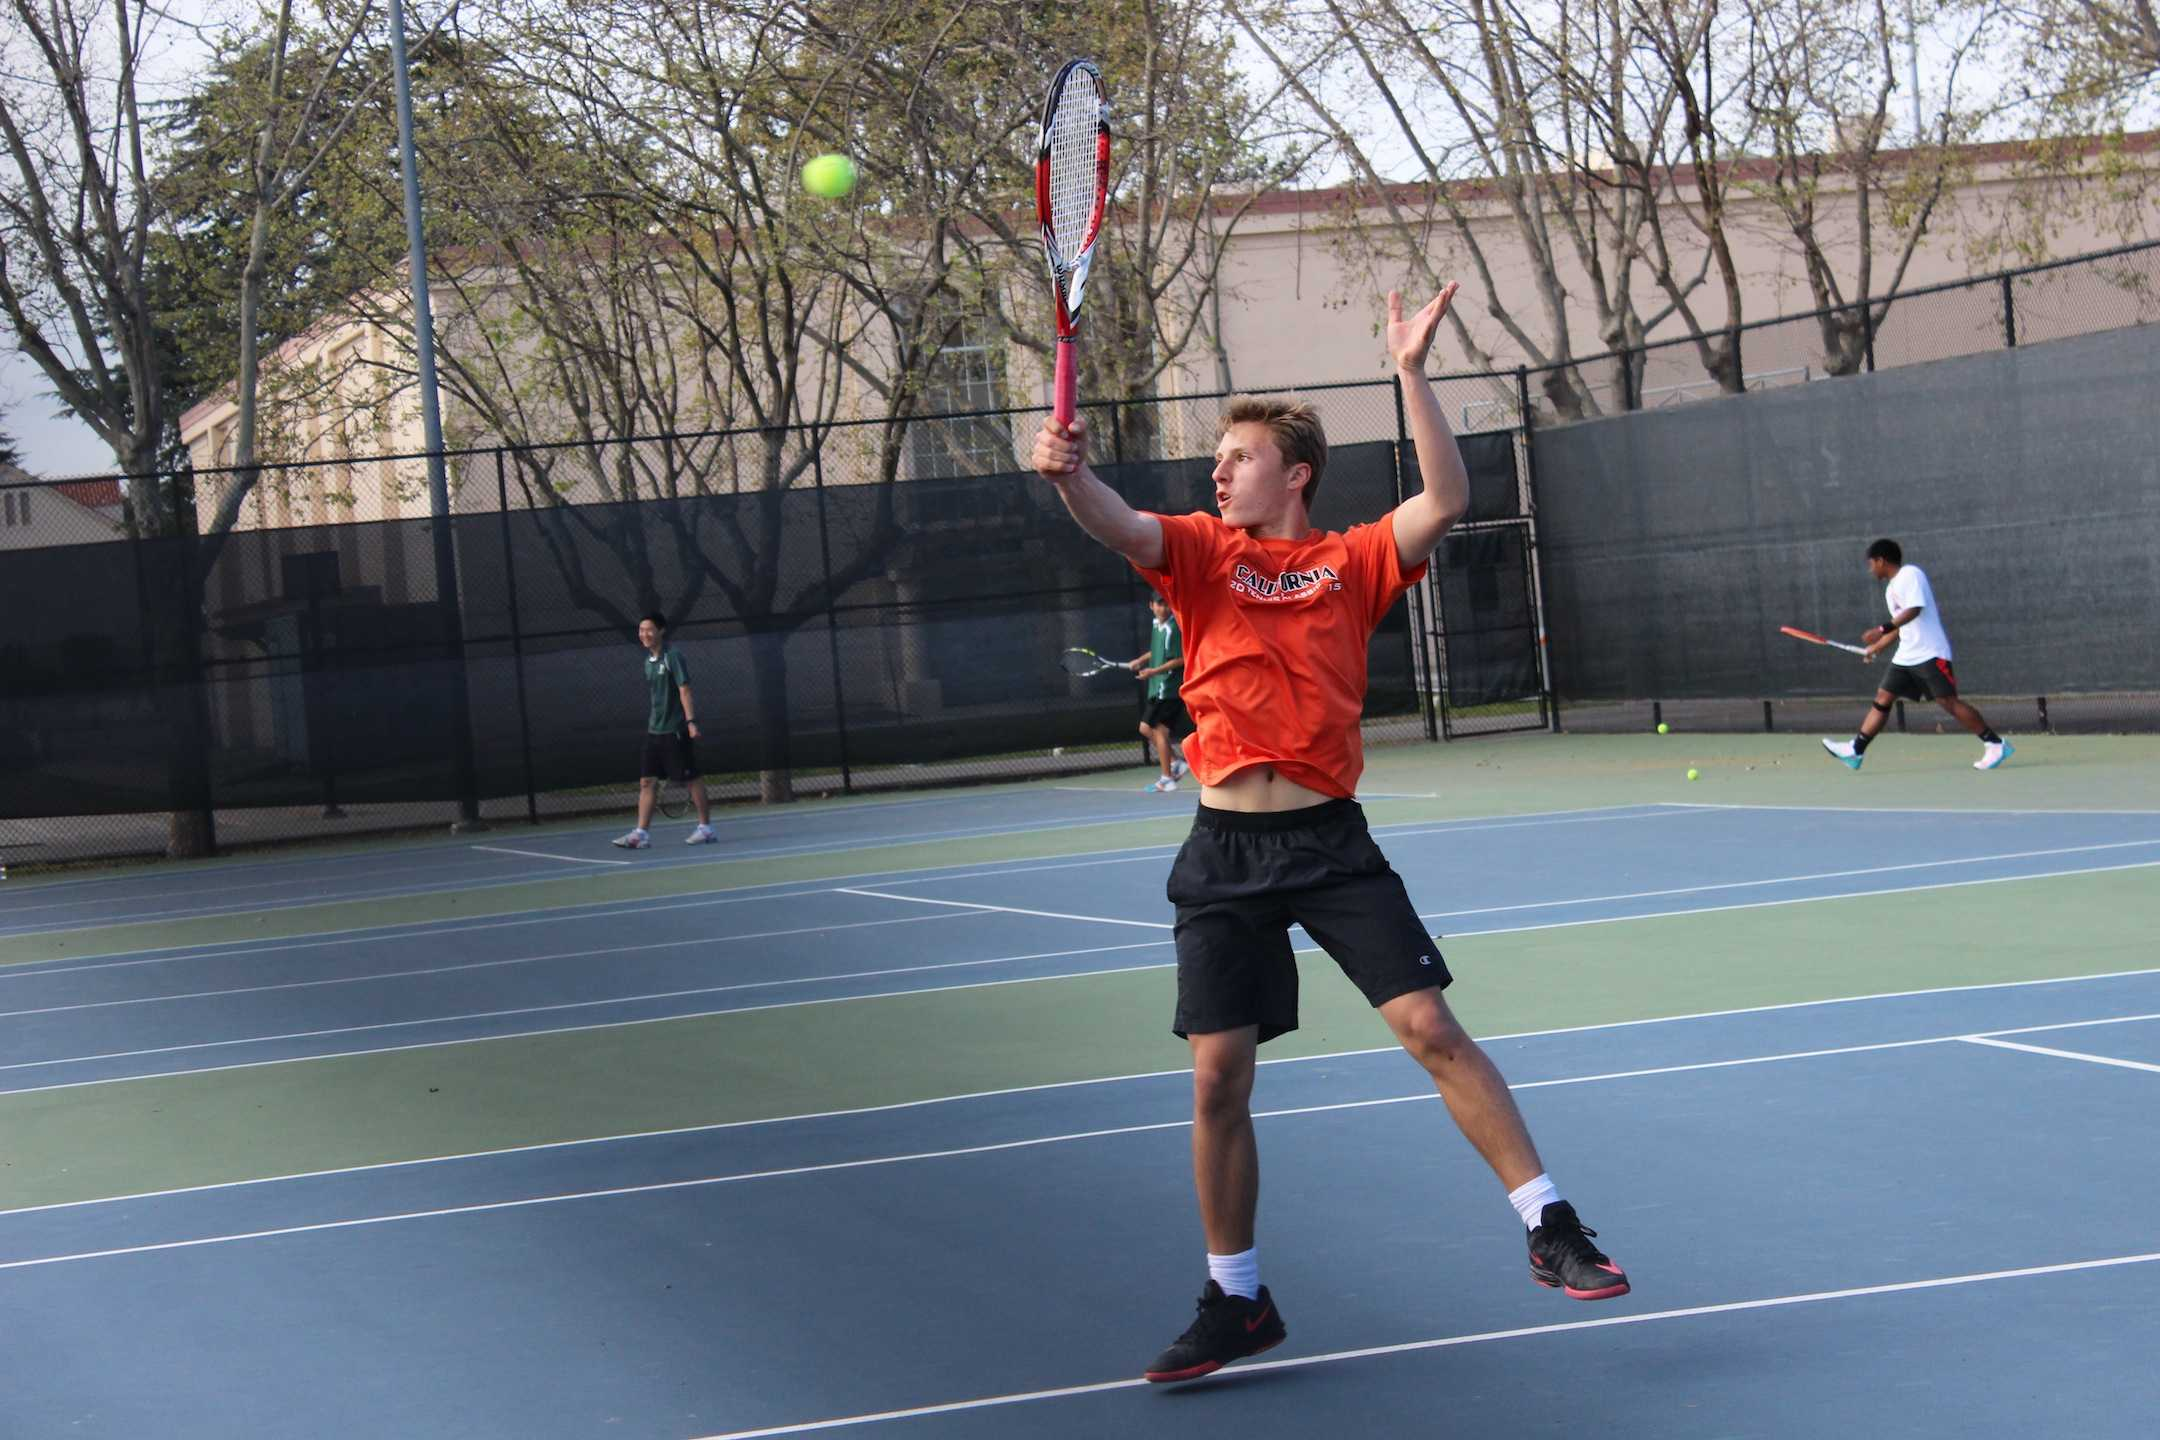 Carl GoodFriend ('16) jumps up to serve the ball. Paly ended up winning the match against Aragon High School.